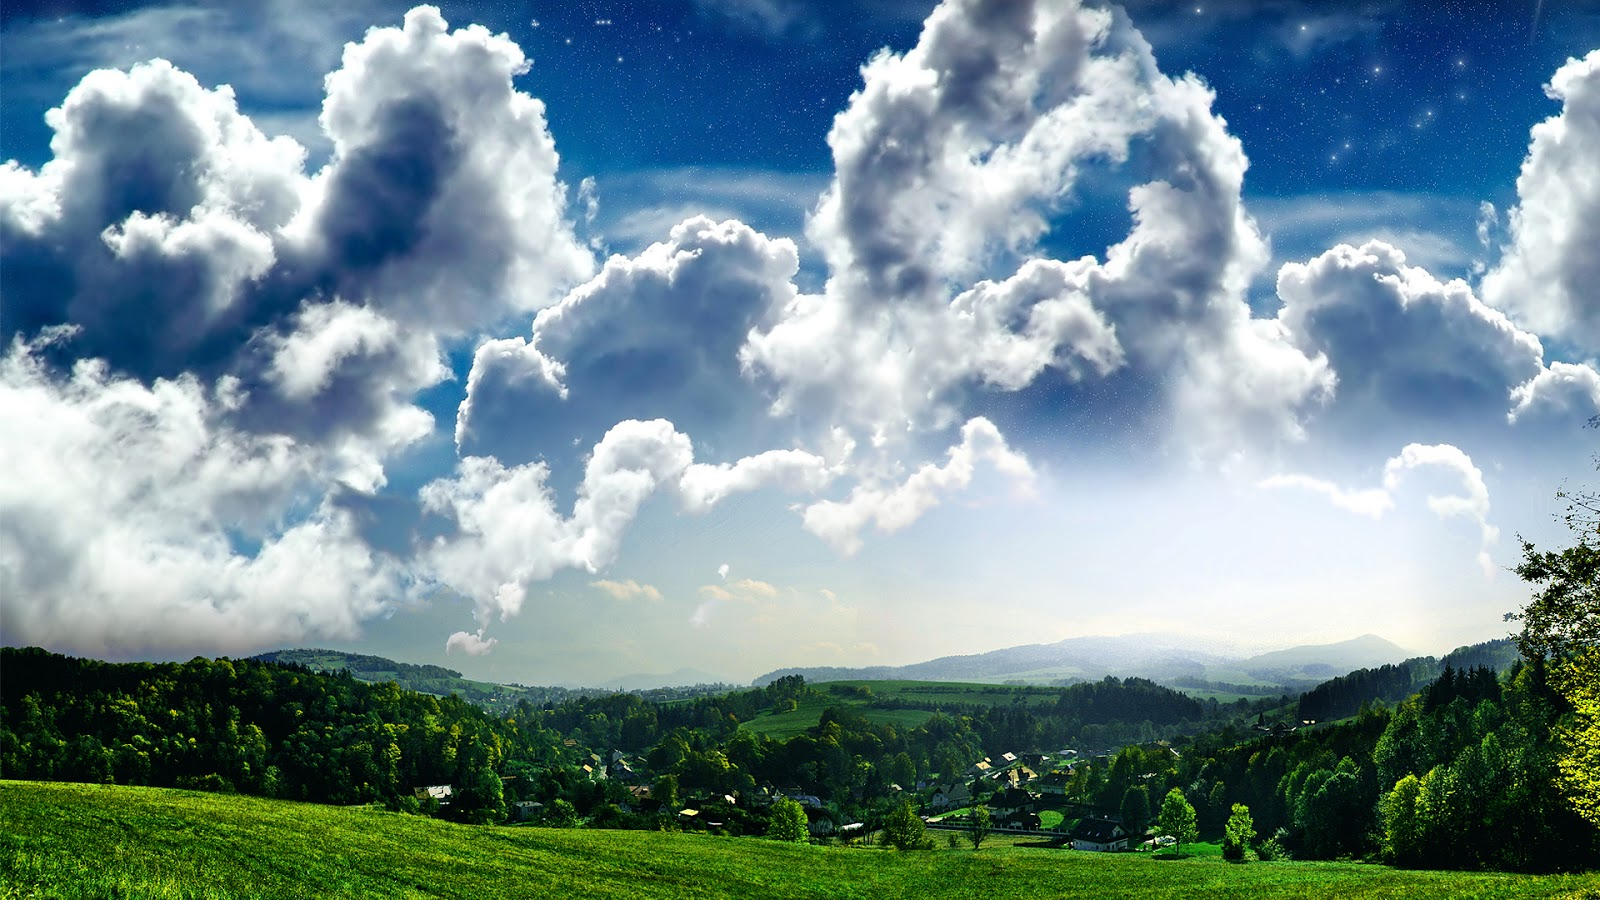 100 Best Nature Full HD Wallpapers | HD Wallpapers | widescreen wallpapers | Nature Wallpapers ...